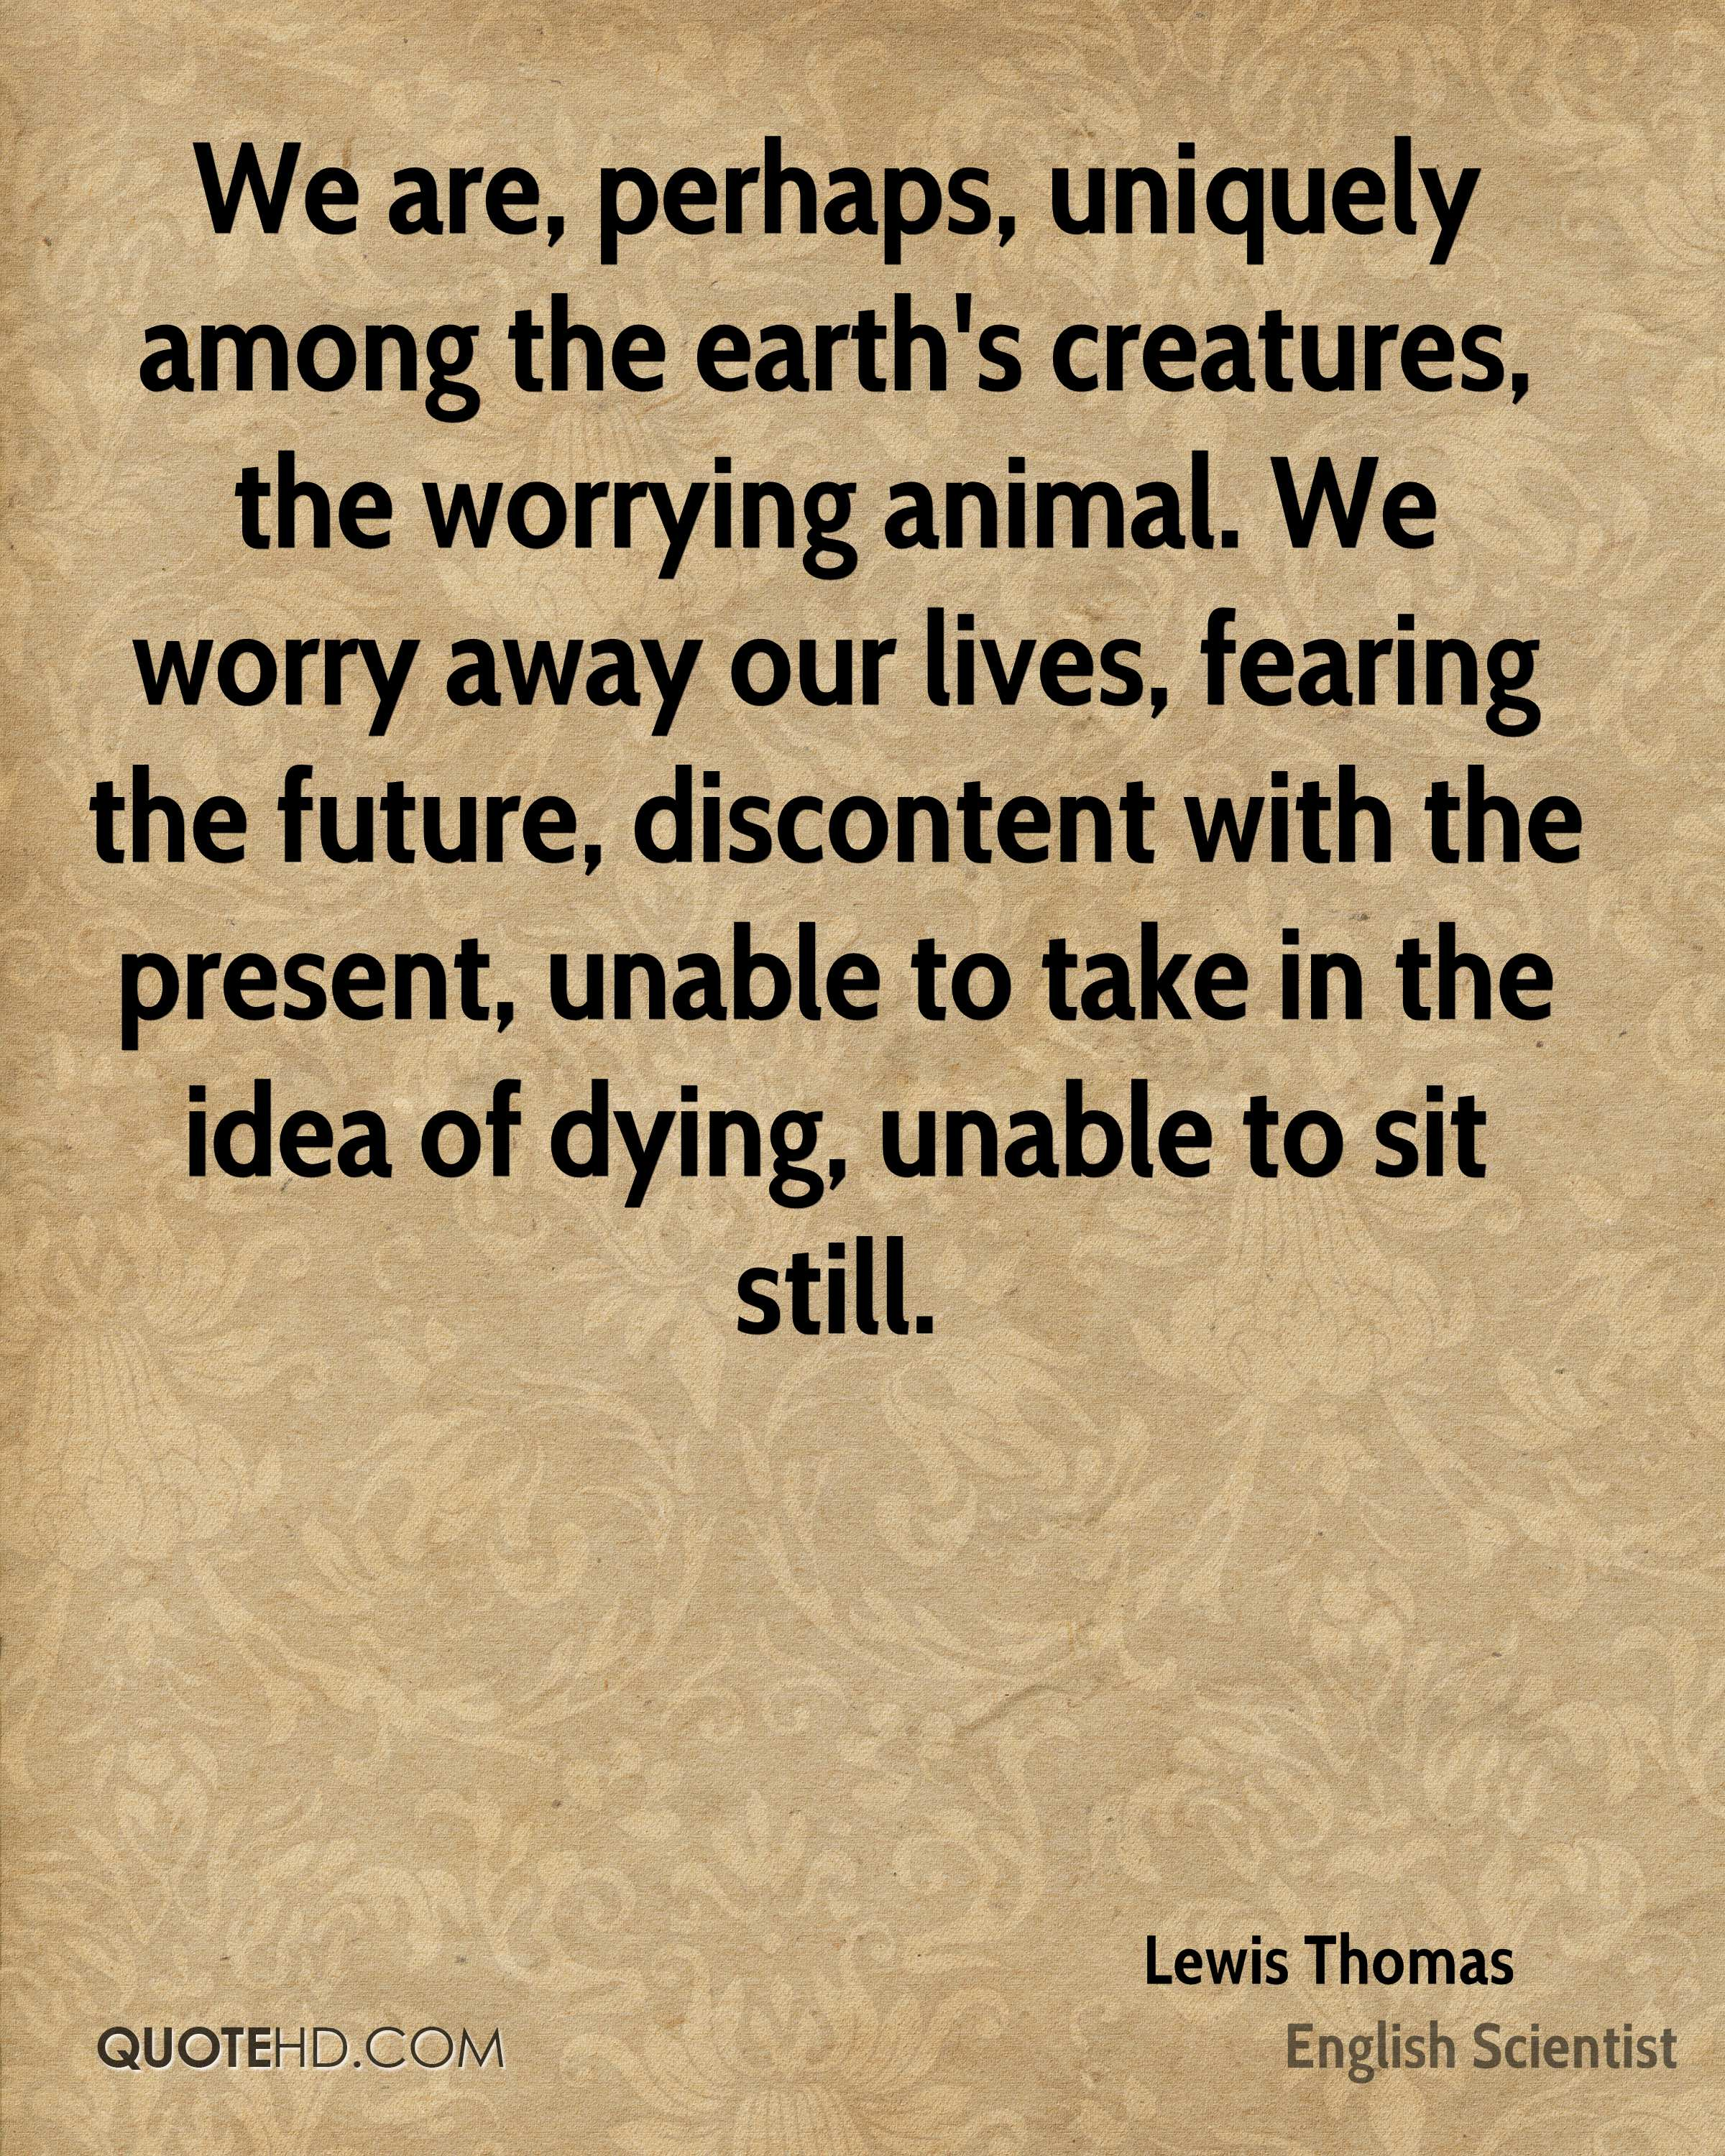 We are, perhaps, uniquely among the earth's creatures, the worrying animal. We worry away our lives, fearing the future, discontent with the present, unable to take in the idea of dying, unable to sit still.